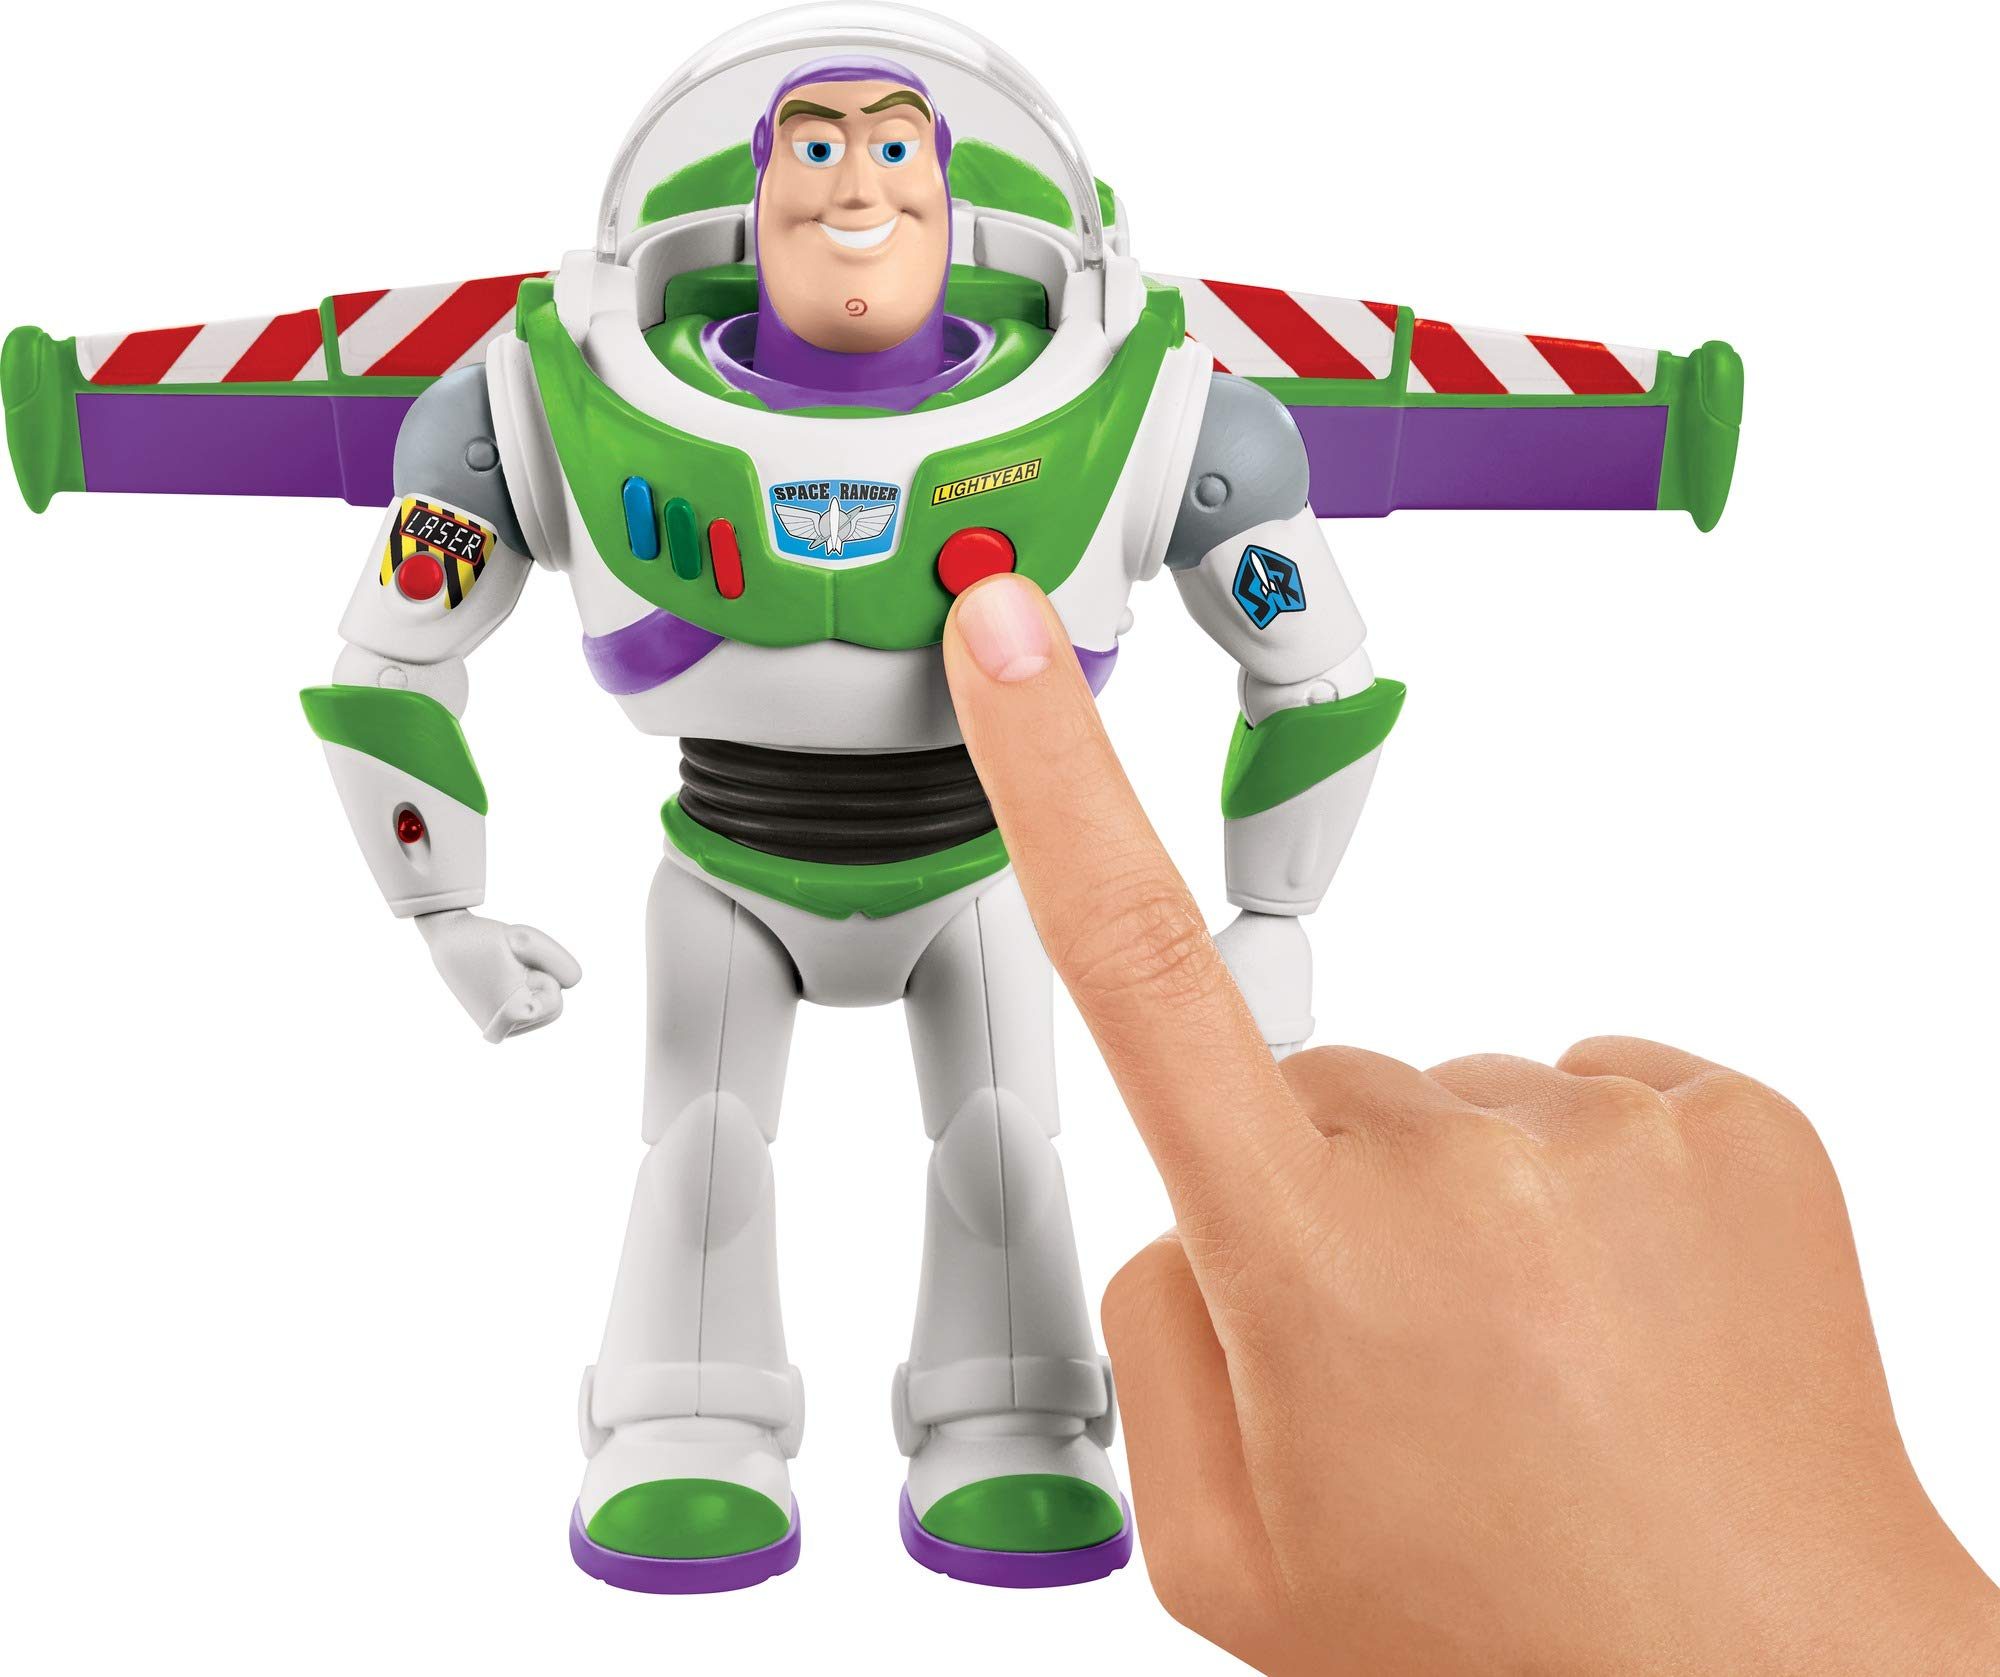 Disney Pixar Toy Story Ultimate Walking Buzz Lightyear, 7'' by Toy Story (Image #8)